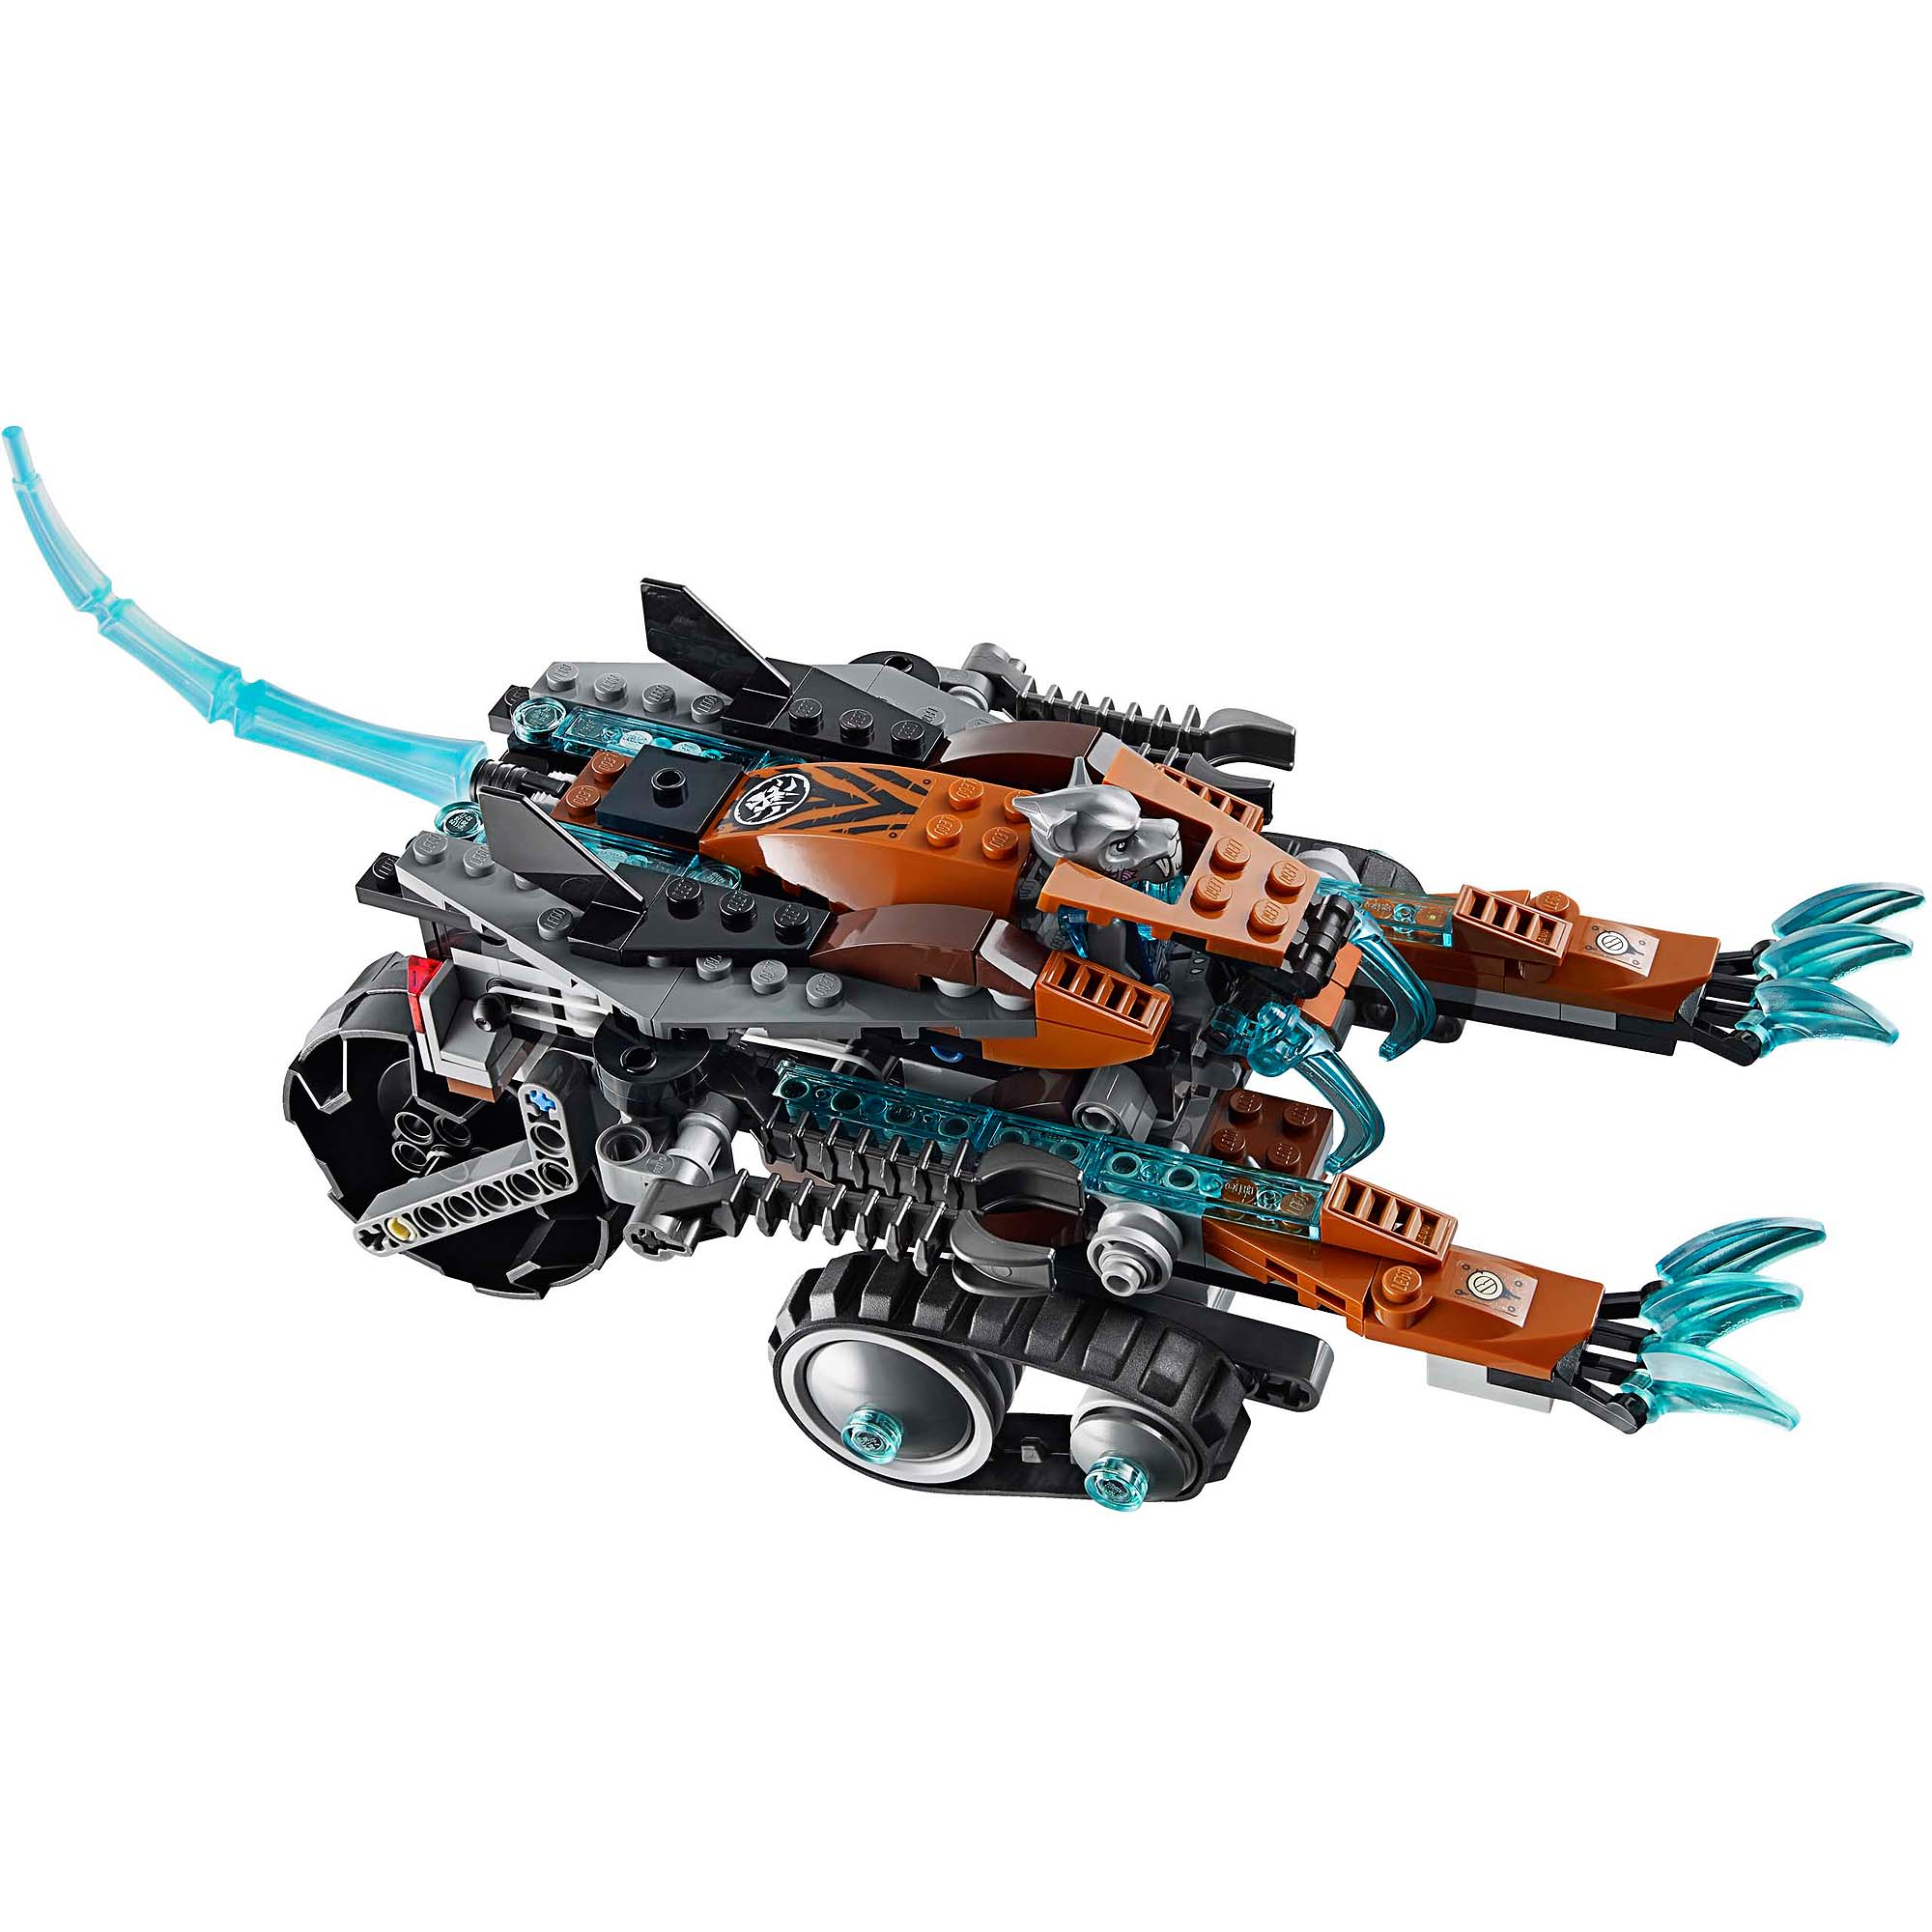 LEGO Chima Flying Phoenix Fire Temple